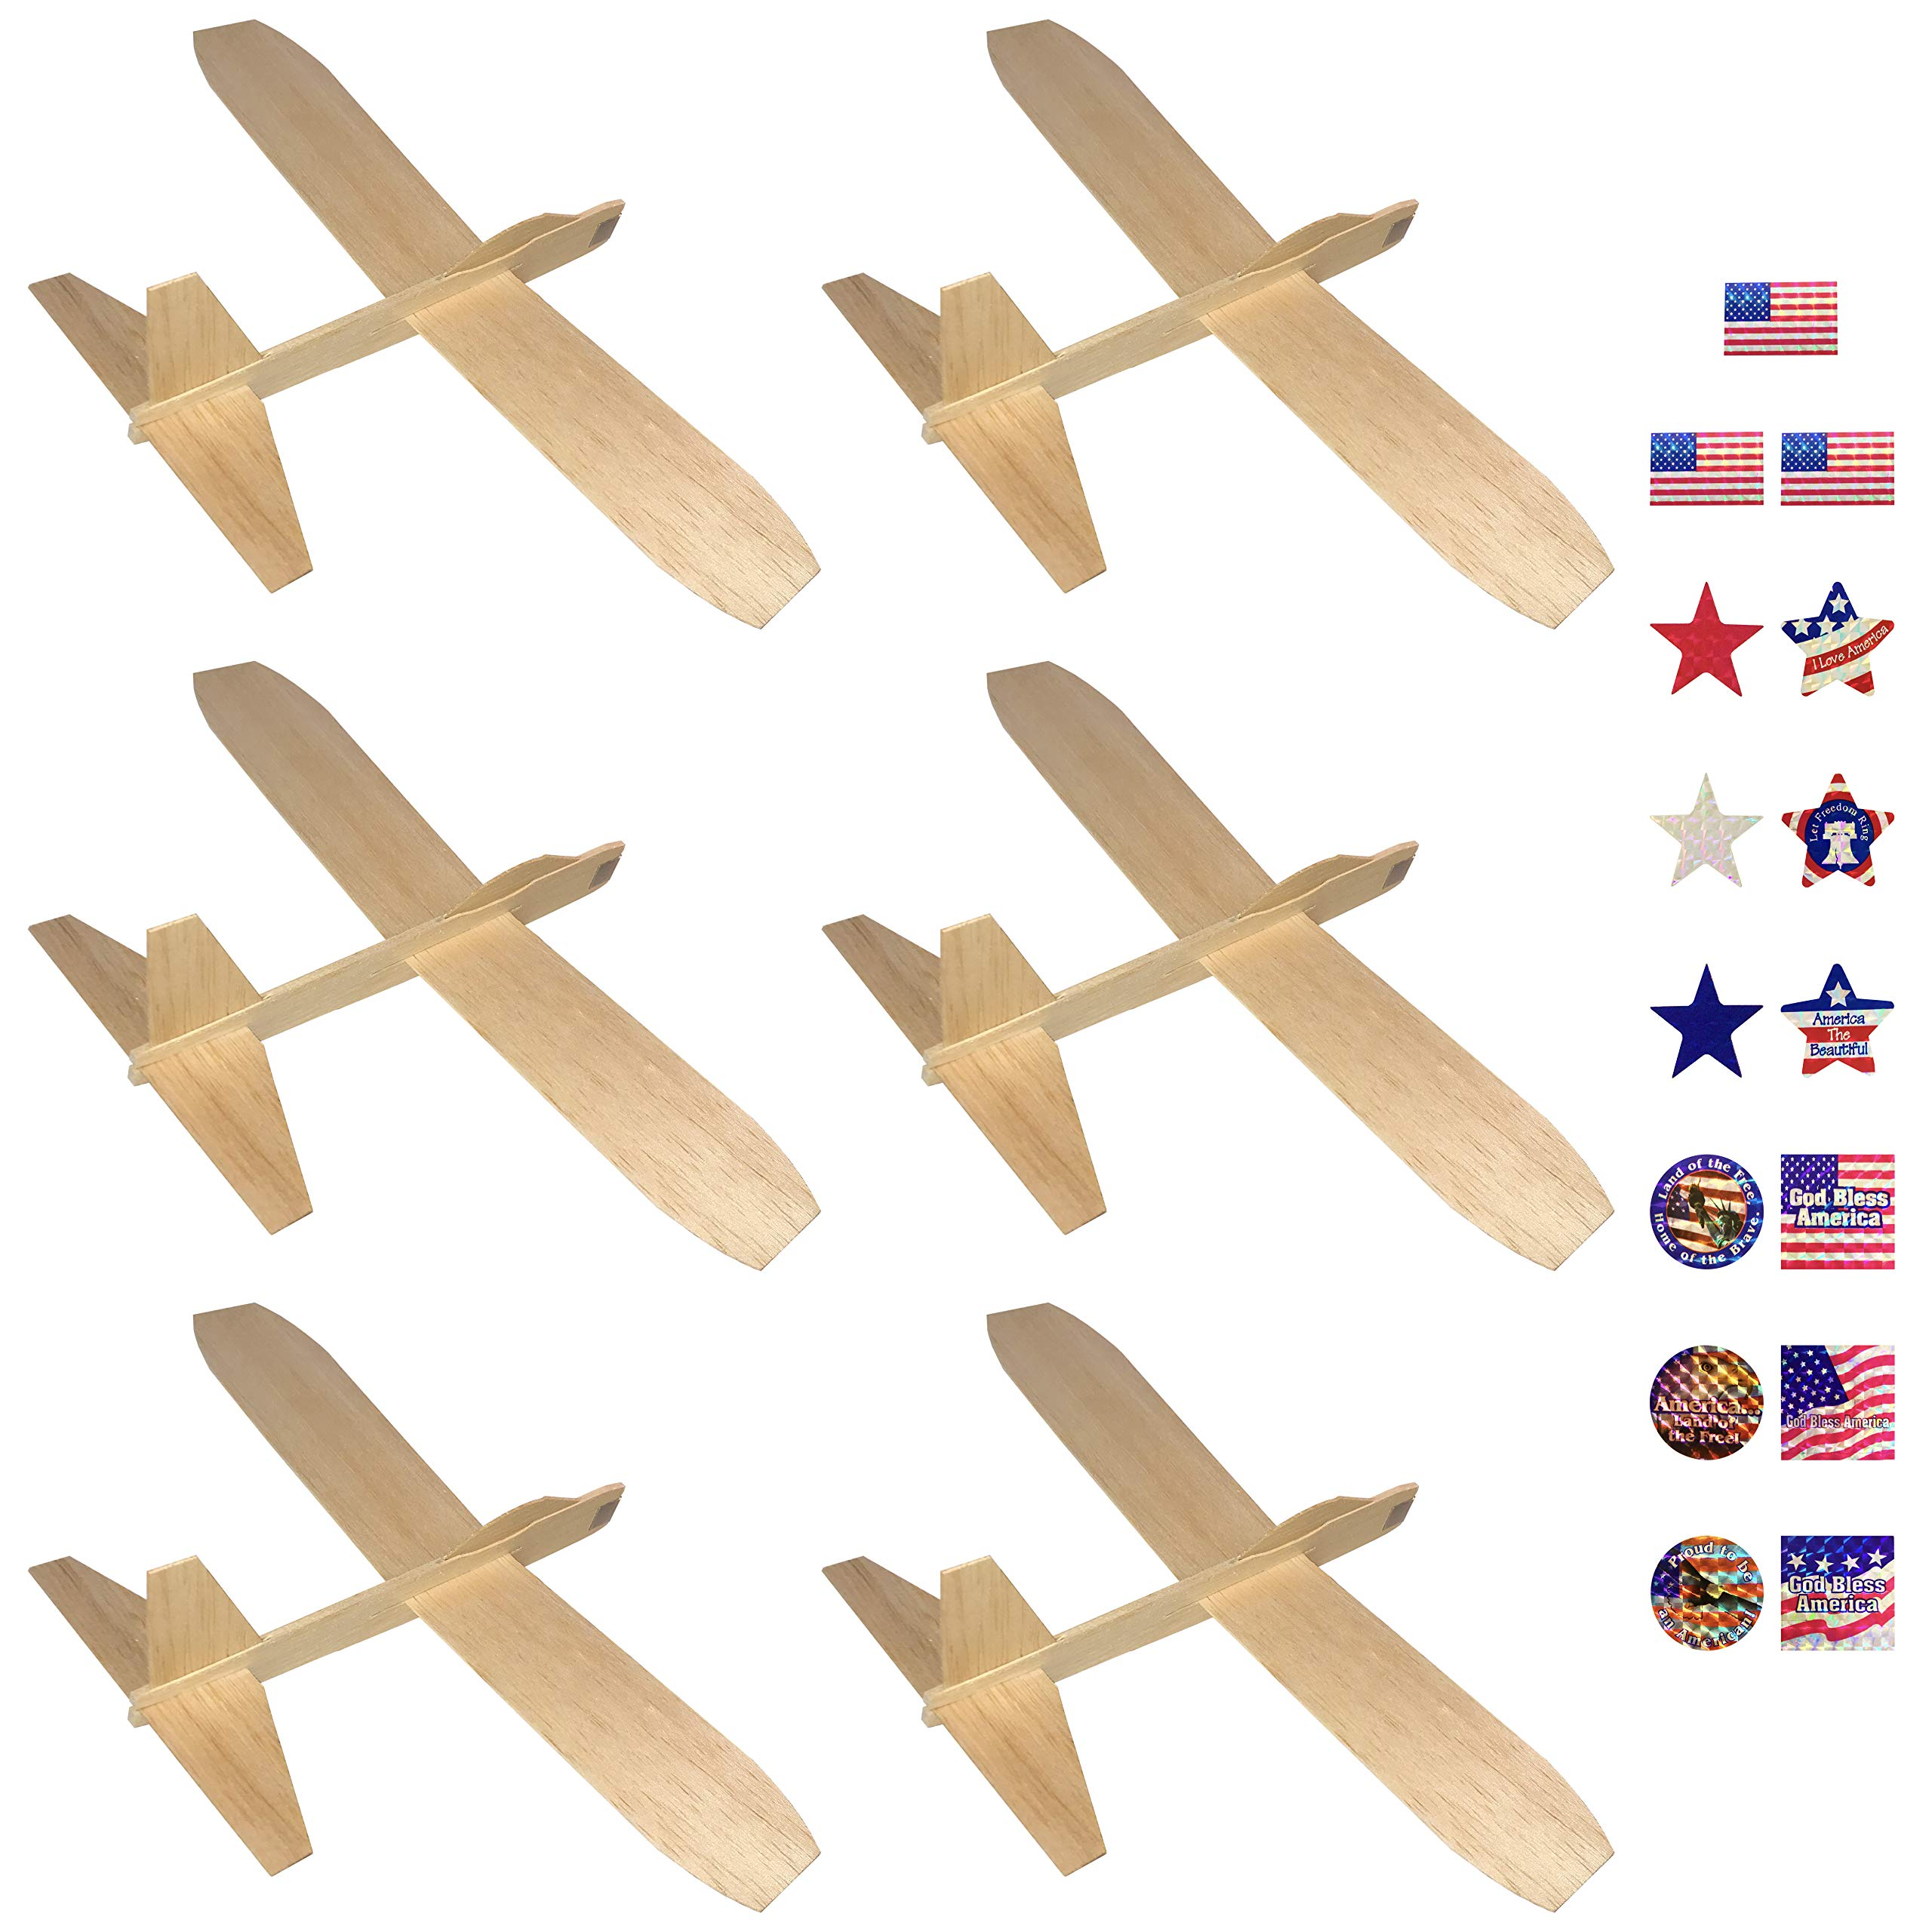 Guillows Balsa Wood Gliders Jetfire   Wooden Model Airplane Construction Kits   12-Inch Customizable Unfinished Blank DIY Flying Toy Planes   6-Pack with 15 Prismatic Patriotic Stickers from KYGON